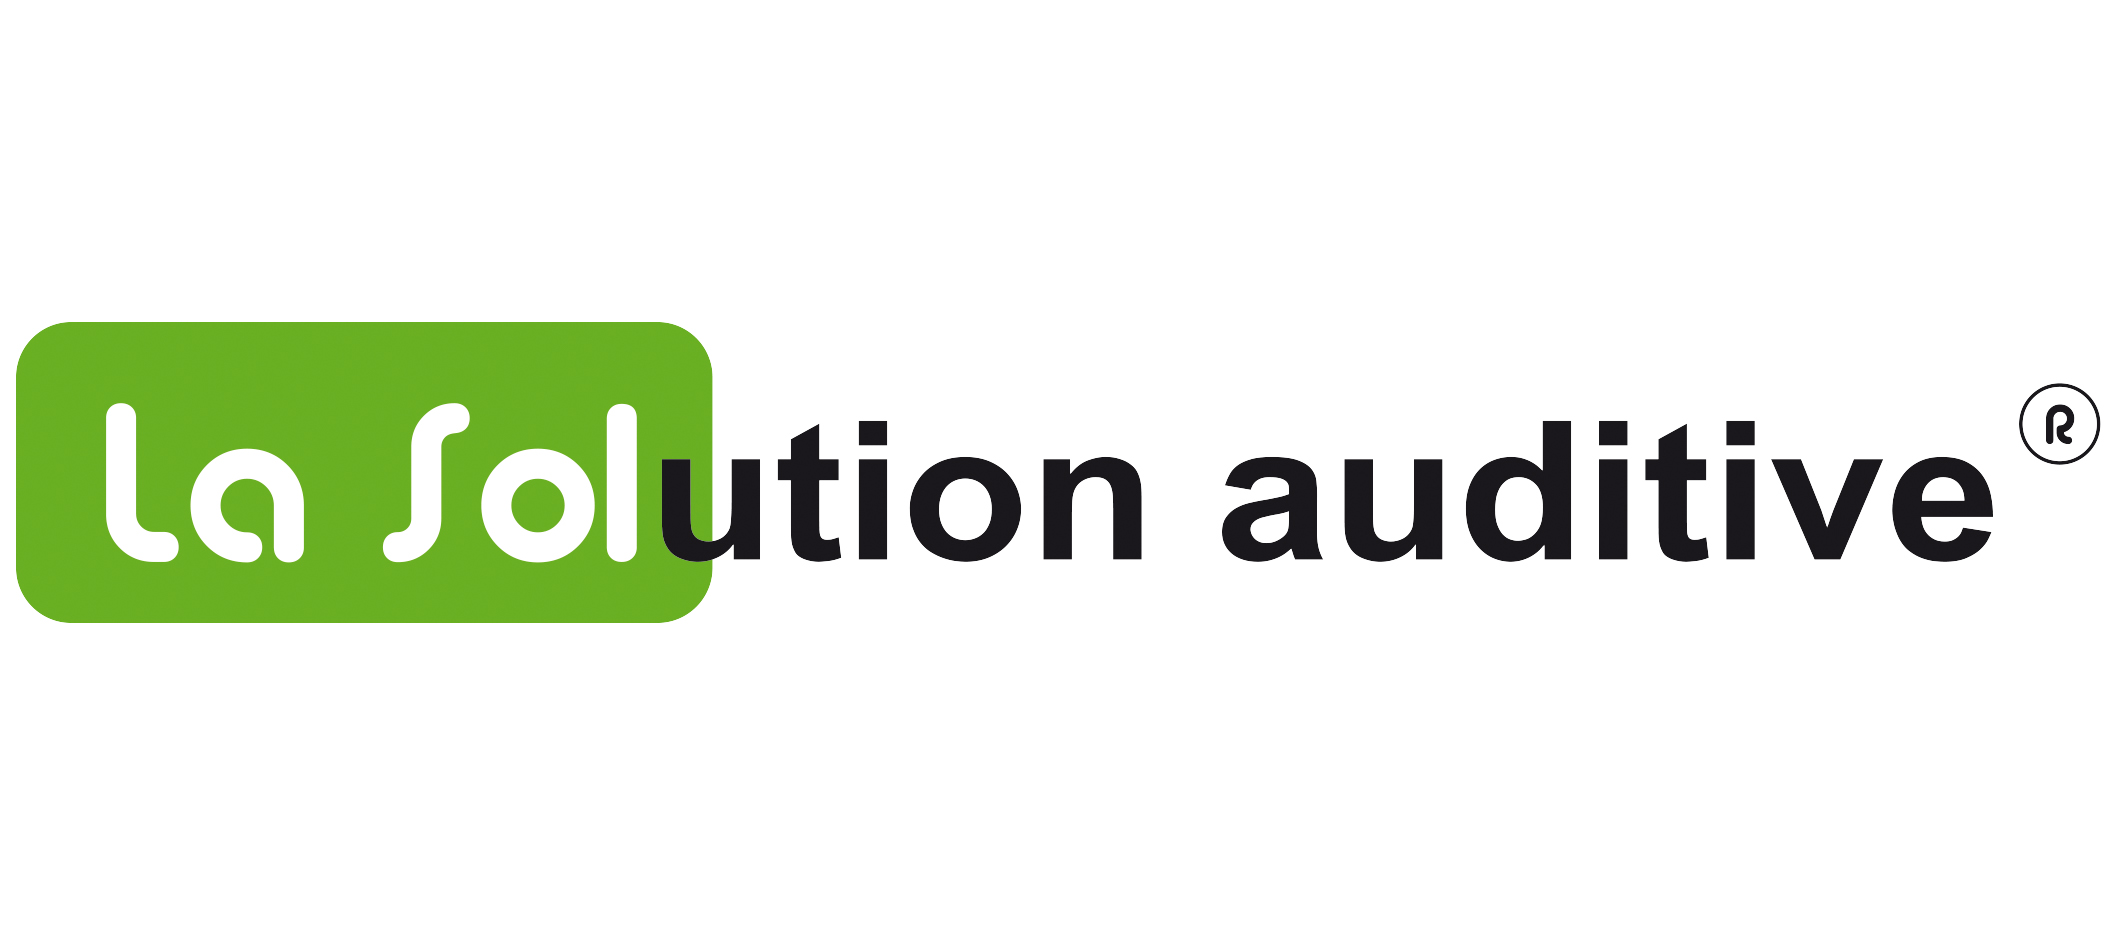 LA SOLUTION AUDITIVE